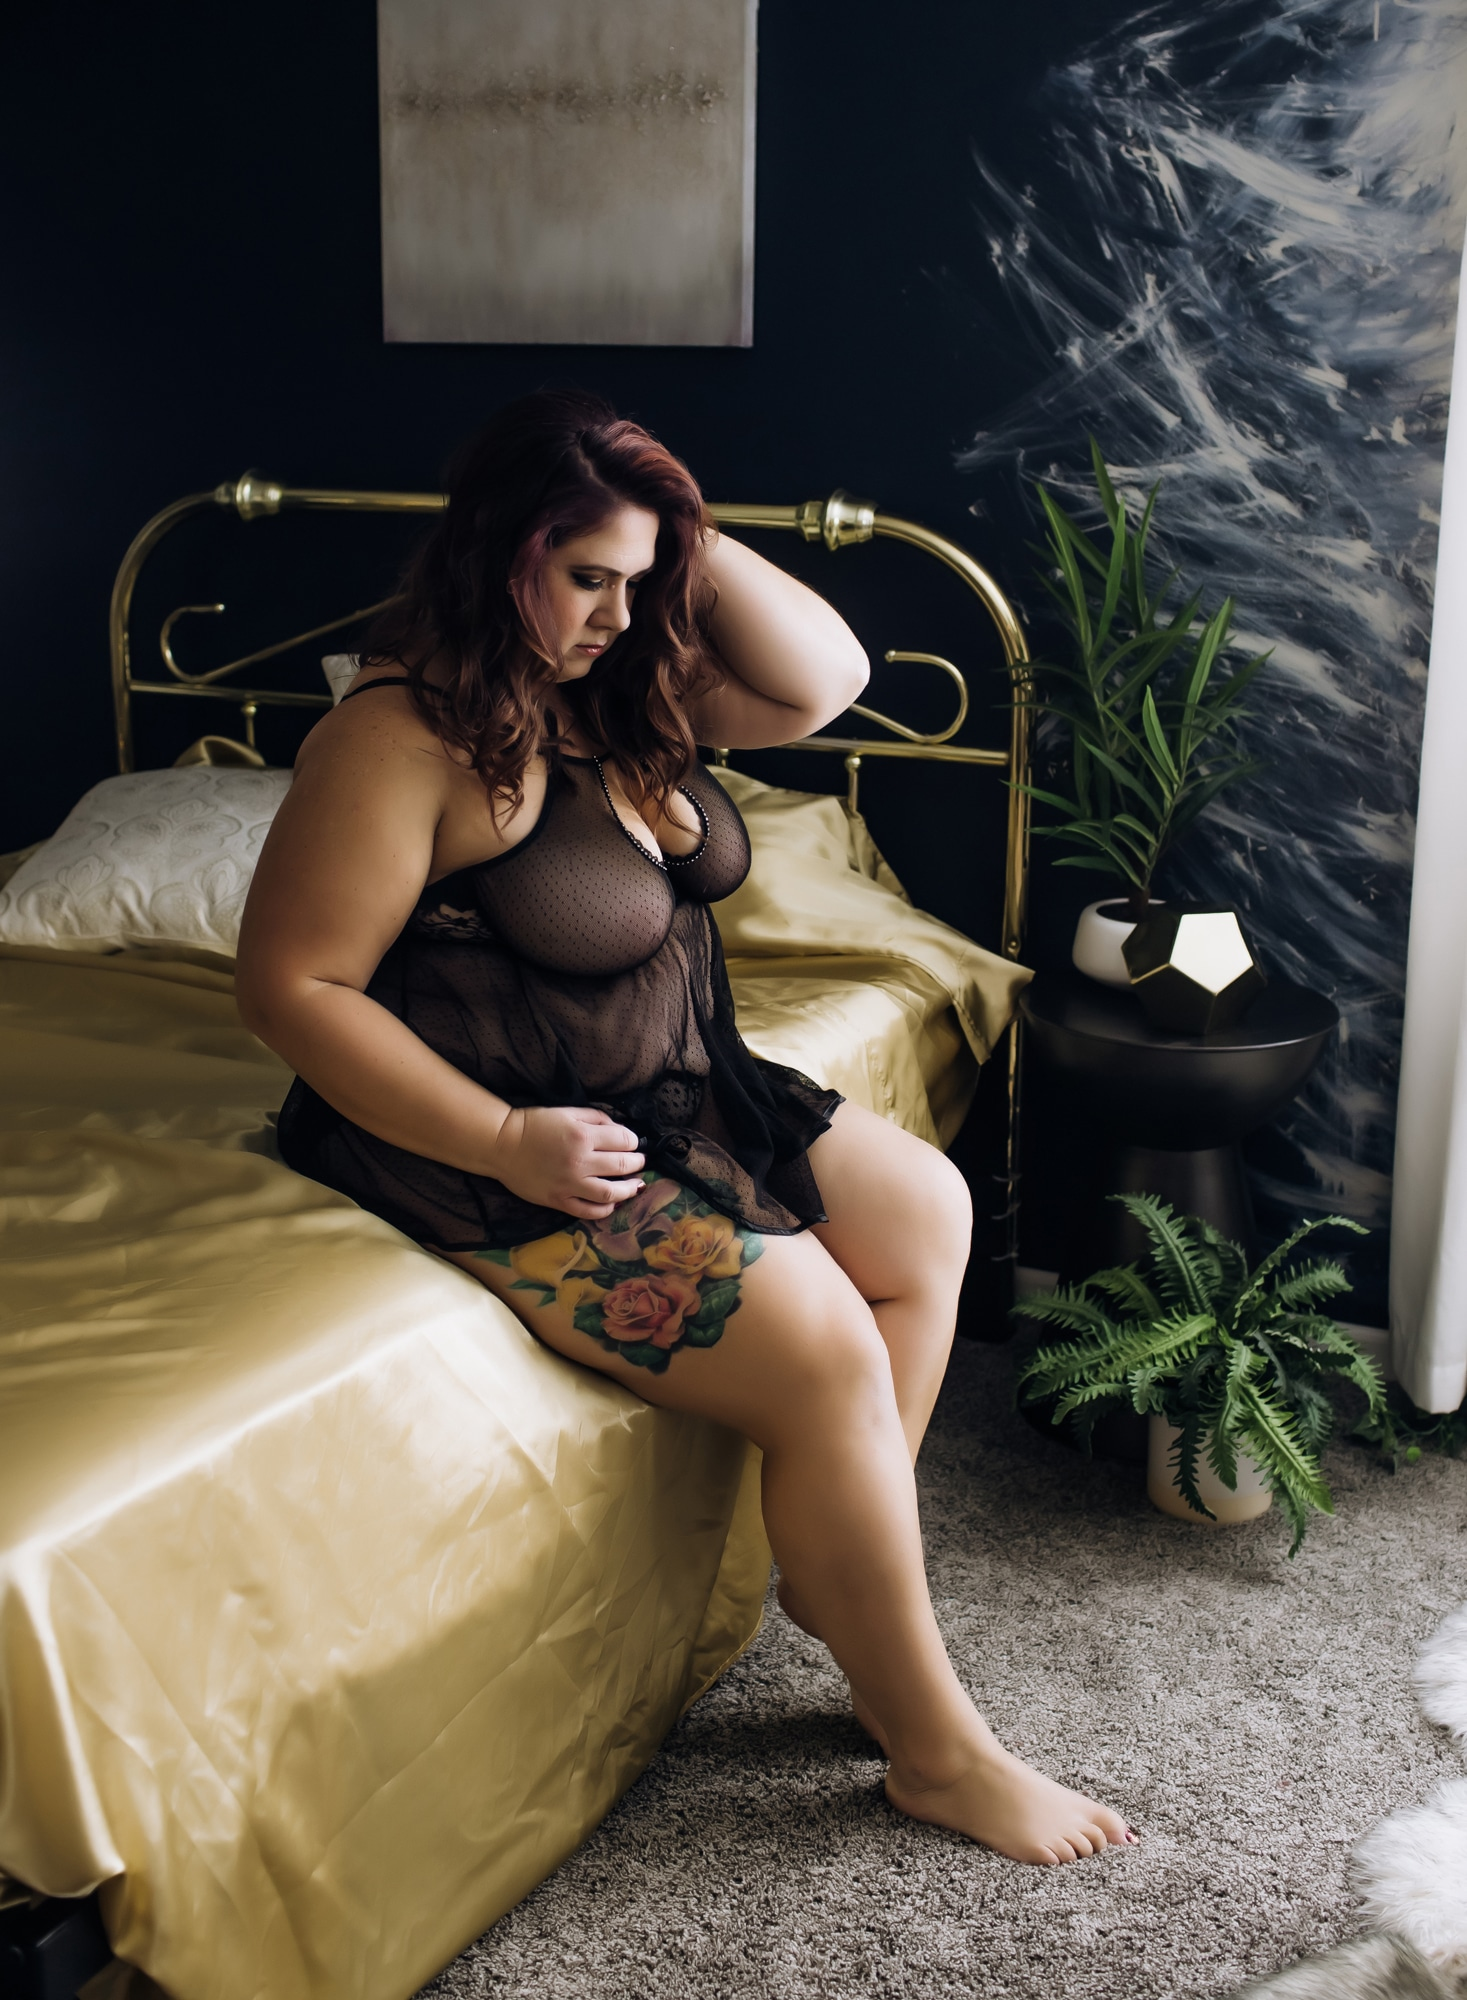 curvy-brunette-sitting-on-edge-of-bed-with-gold-sheets